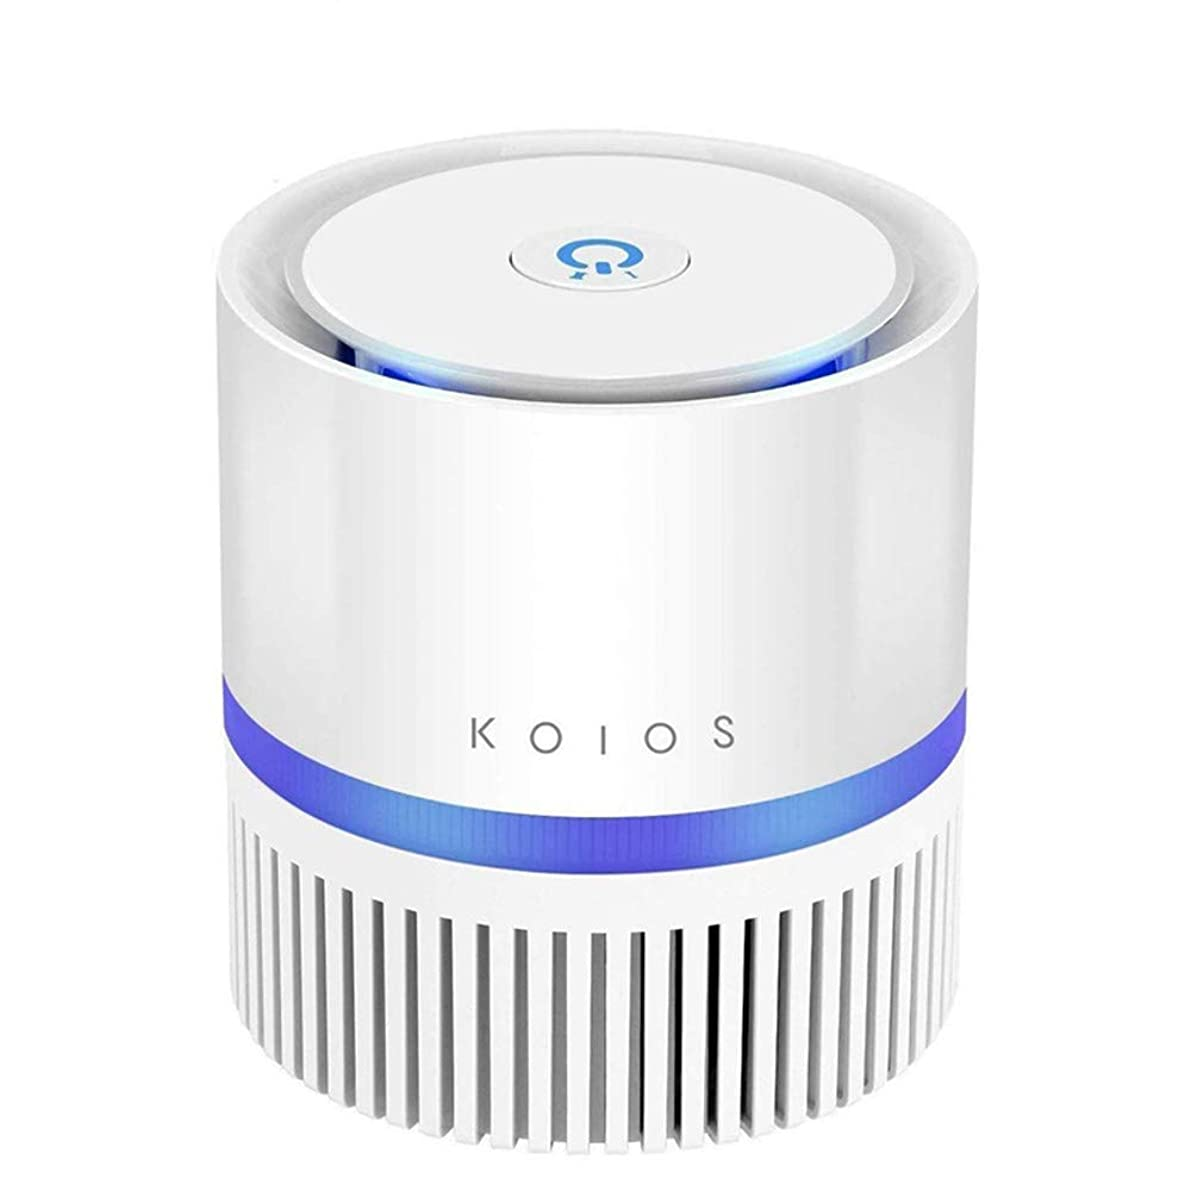 KOIOS Air Purifier, Indoor Air Cleaner with 3-in-1 True HEPA Filter for Home and Office, Odor Allergies Eliminator for Smoke, Dust, Pets, 3 Stage Filtration, Night Light, 3-Year Warranty